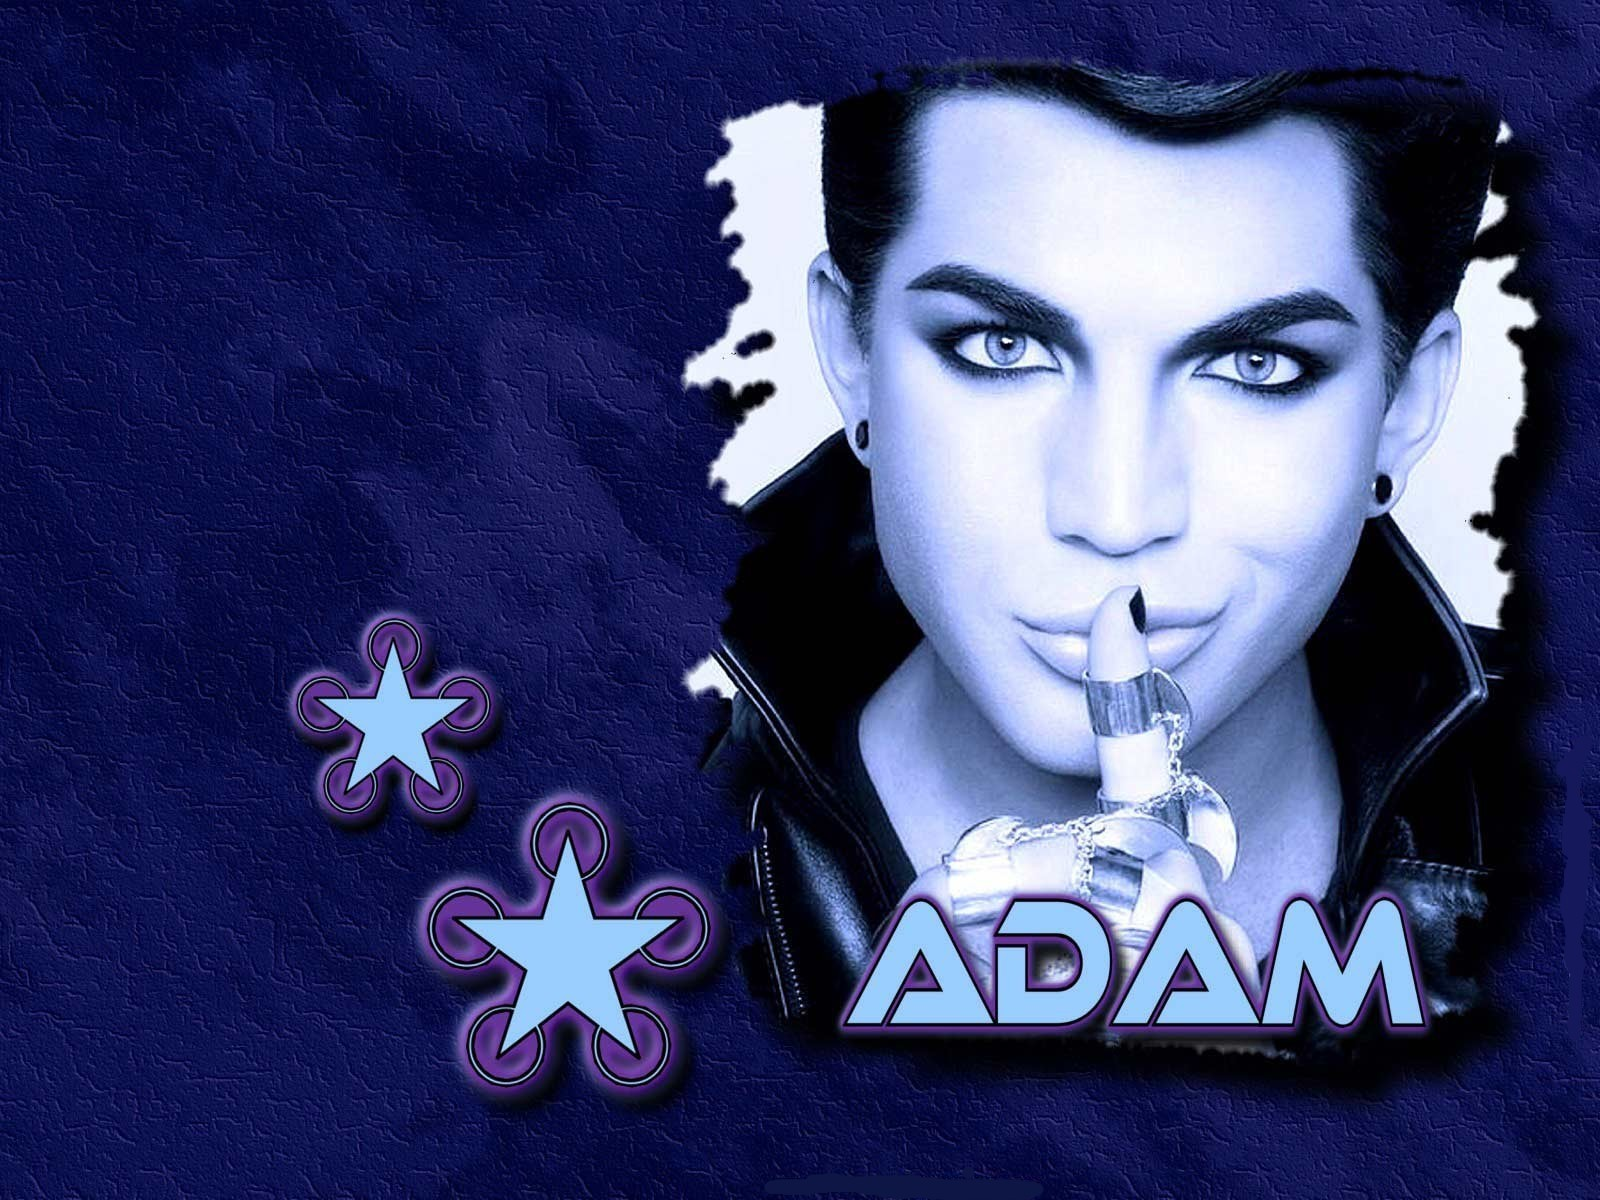 lambert wallpaper adam - photo #34